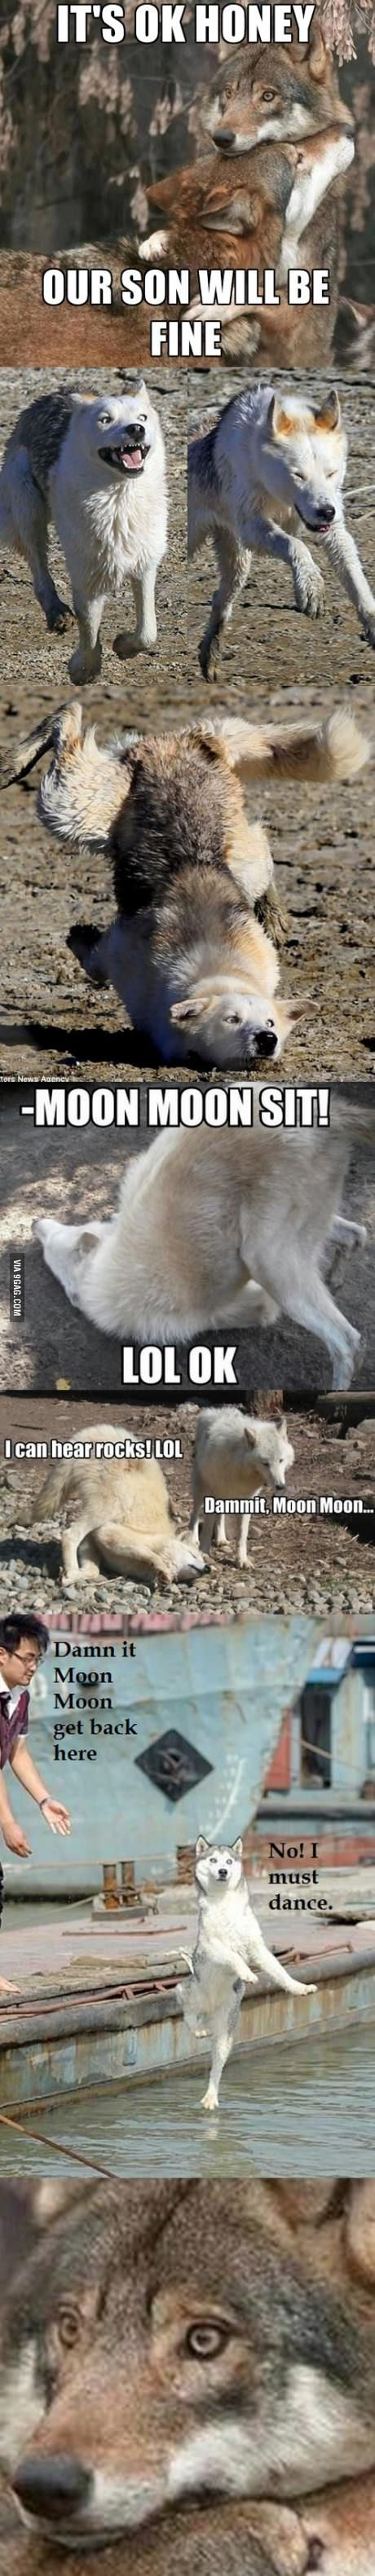 Dammit Moon Moon! CANNOT STOP LAUGHING